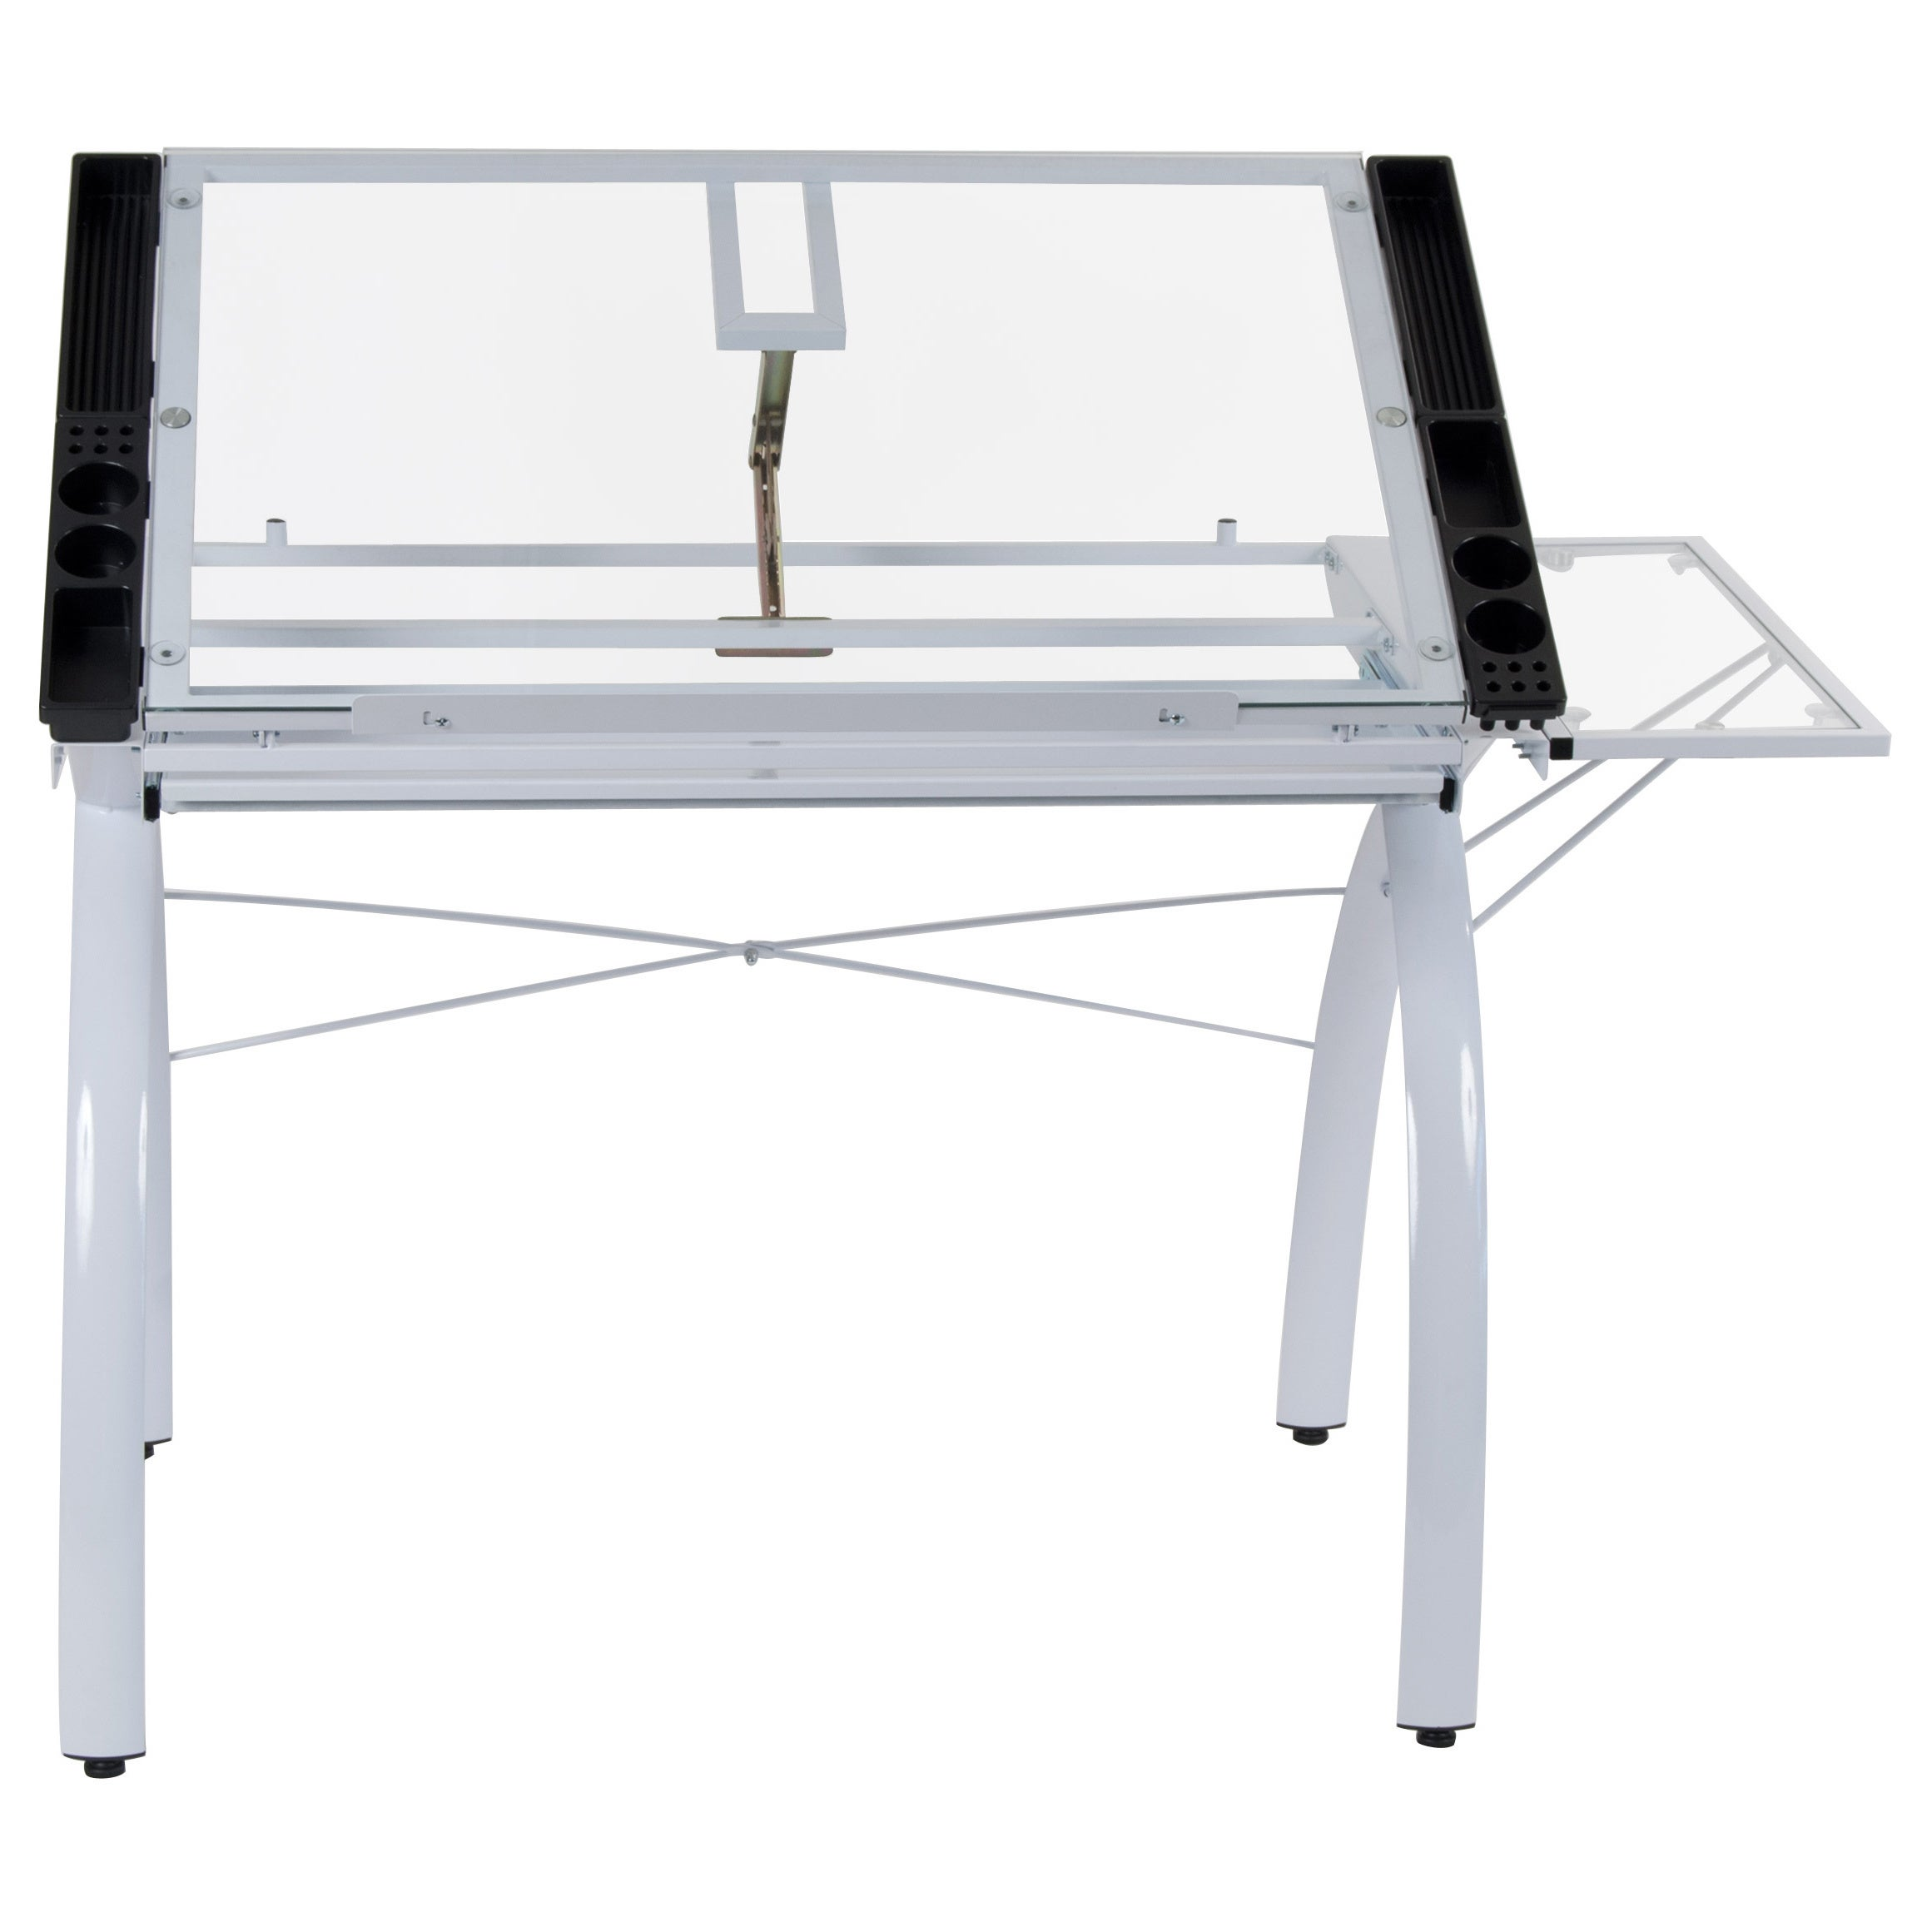 Shop Studio Designs Futura Steel Drafting And Hobby Craft Station Table  With Folding Shelf   Free Shipping Today   Overstock.com   9189552